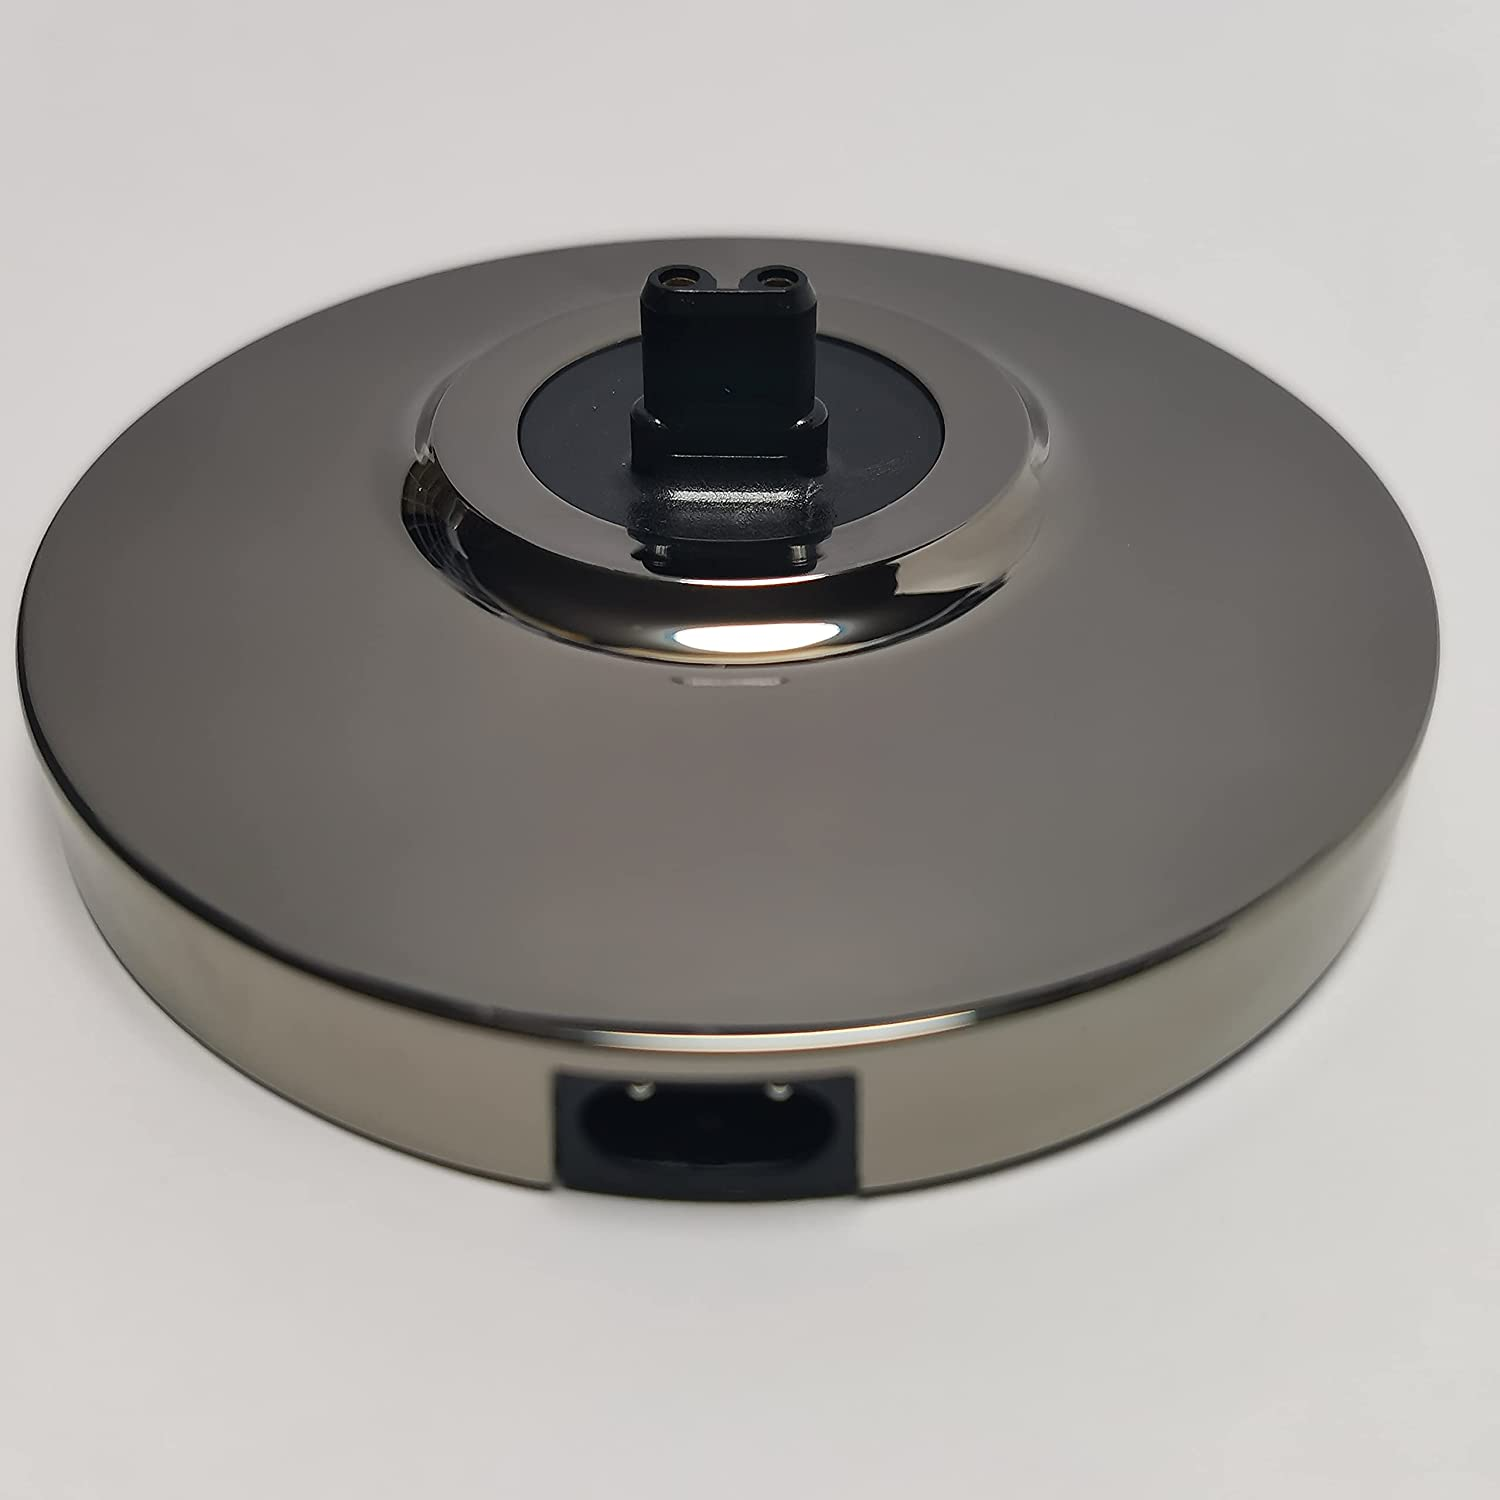 Shaver Boston Mall Charger Stand Factory outlet Base HQ71 For